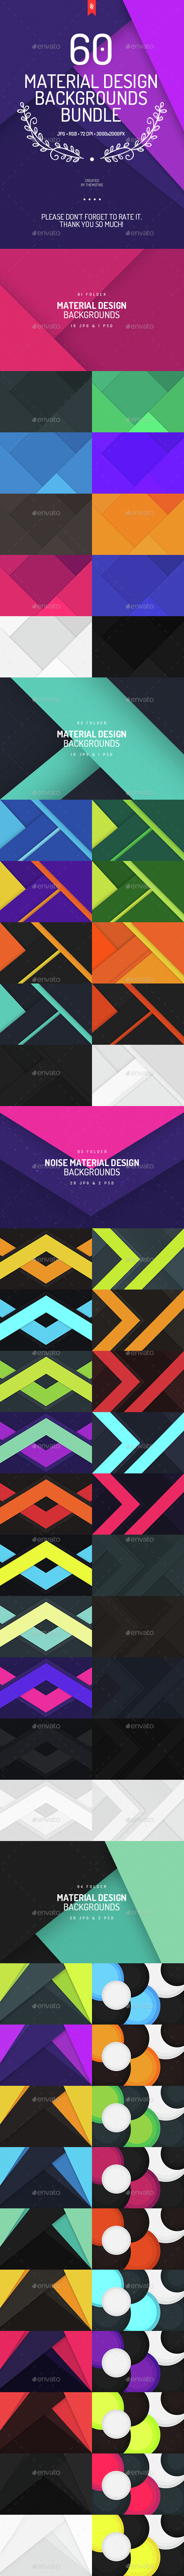 60 Material Design Backgrounds Bundle - Backgrounds Graphics